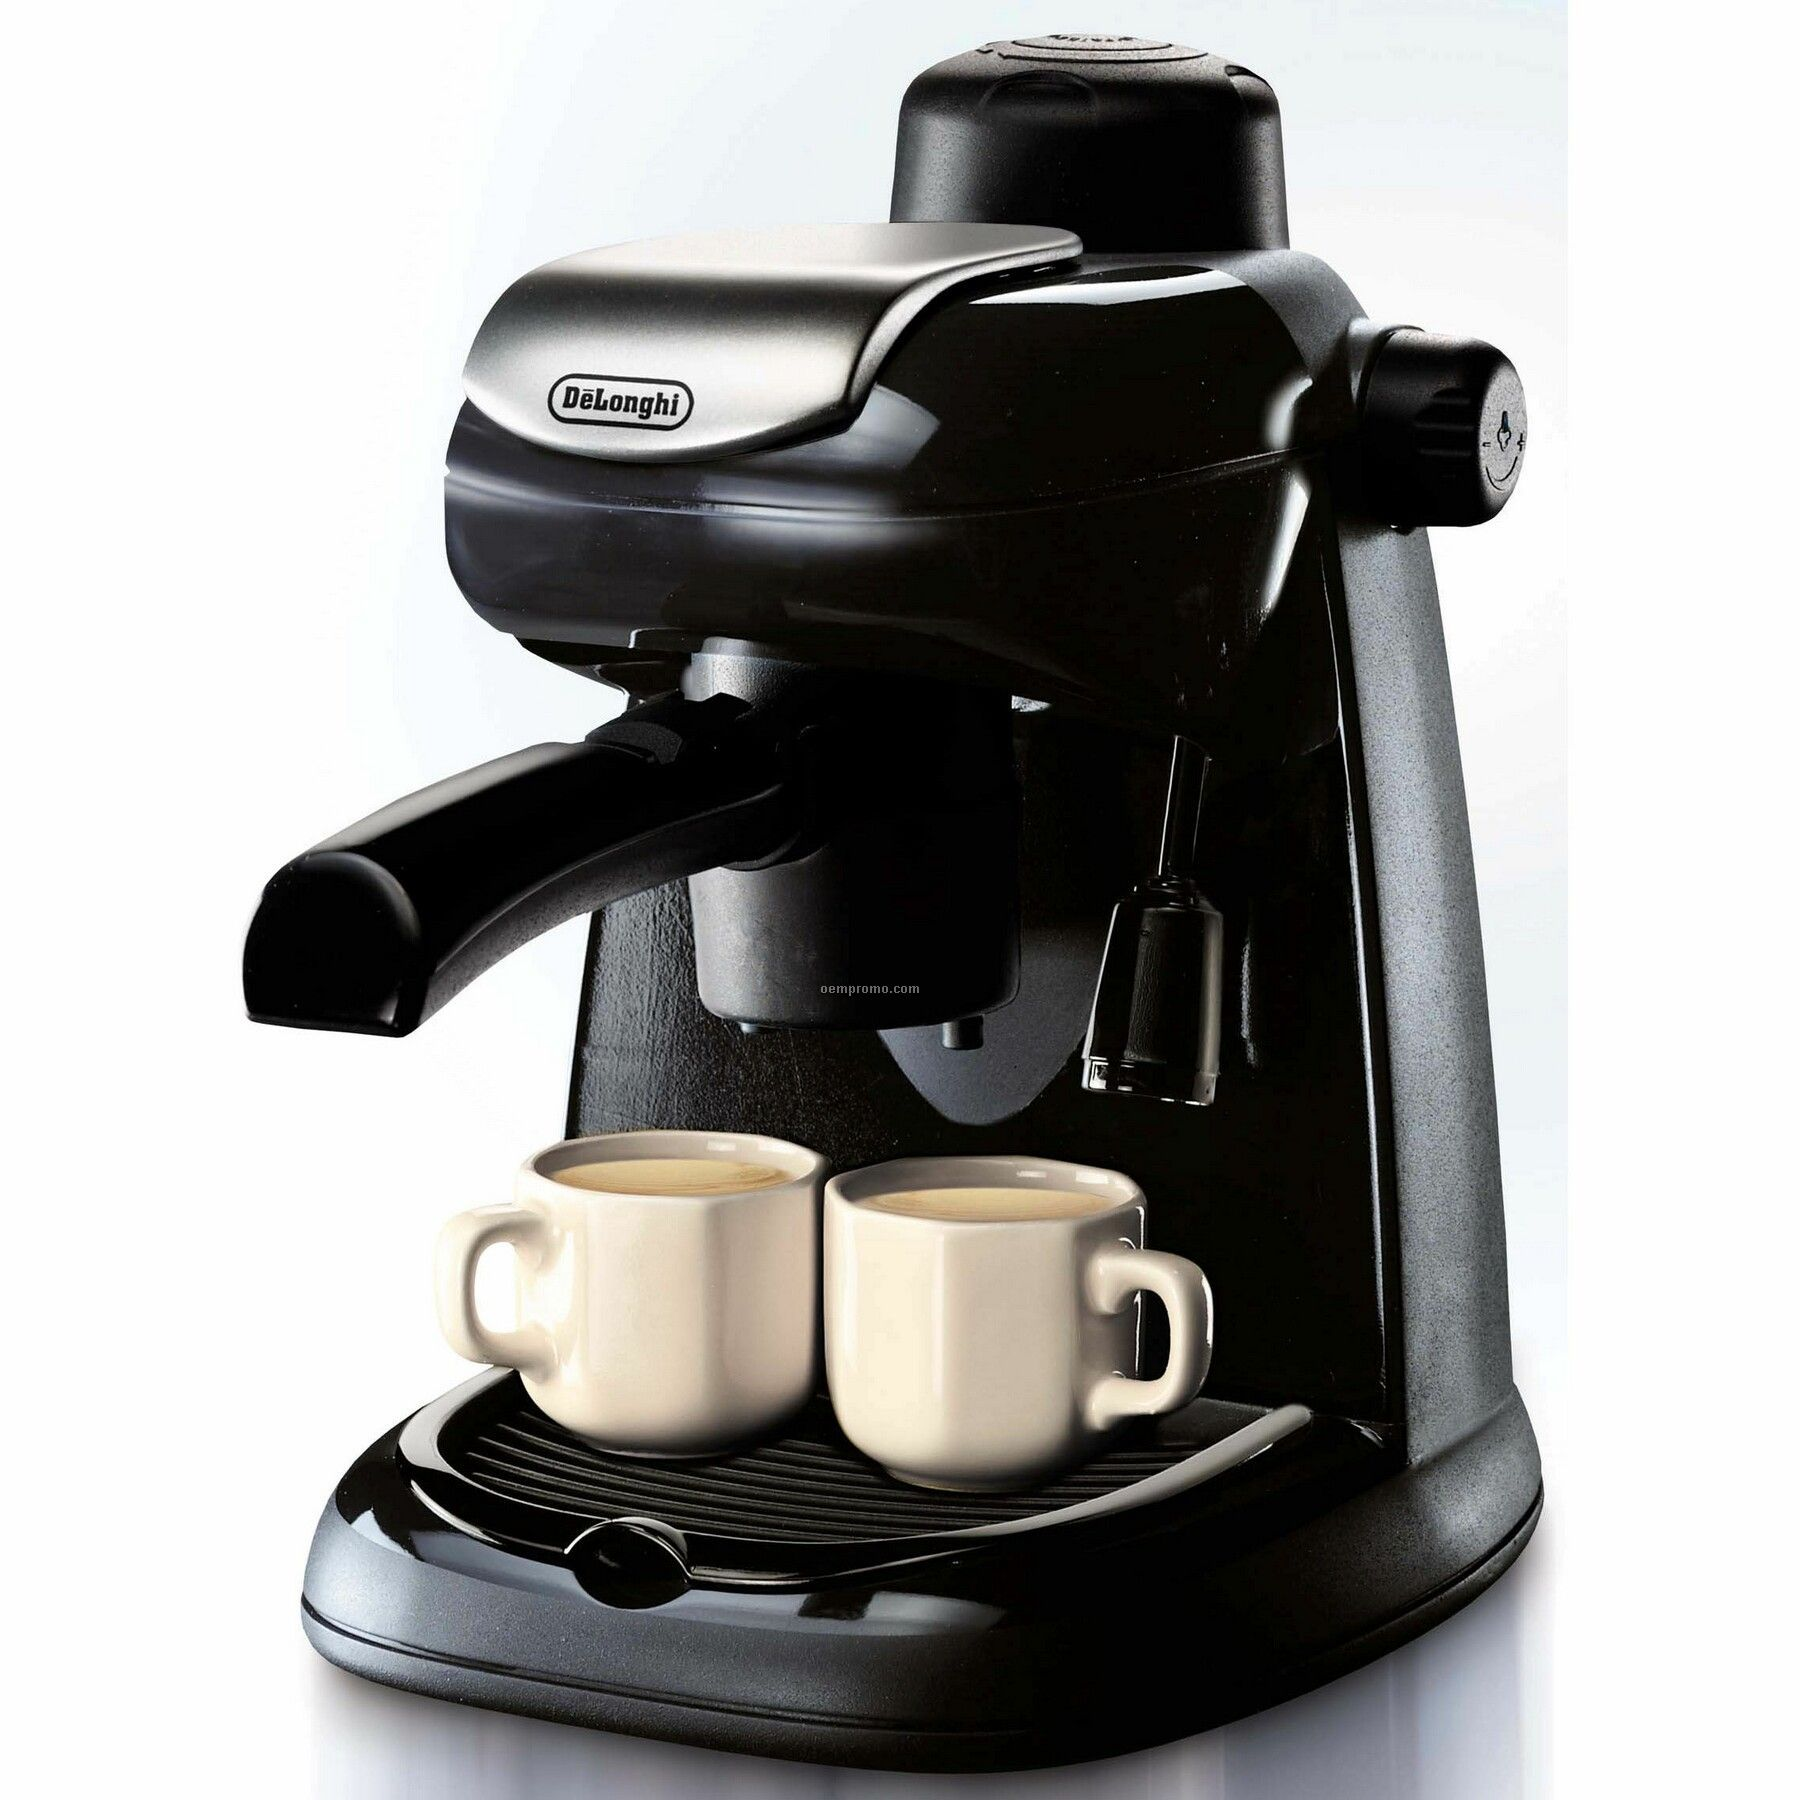 Delonghi 4 Cup Espresso And Cappuccino Maker